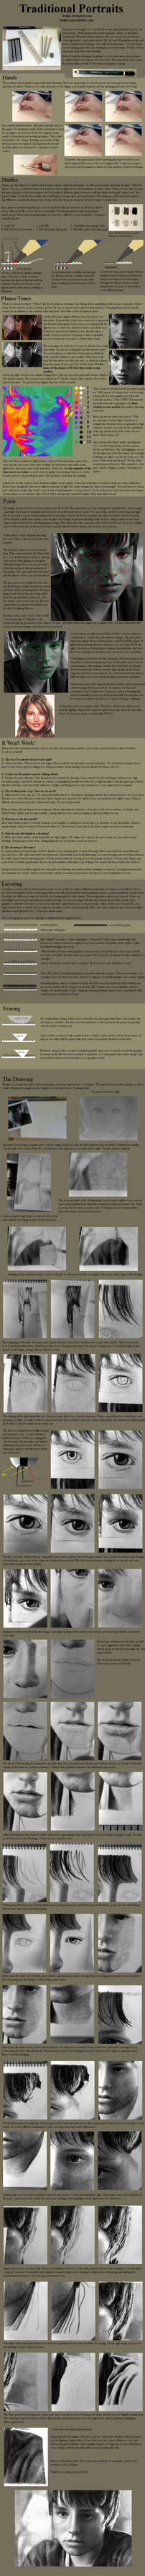 Tutorial - Graphite:Portraits by treijim